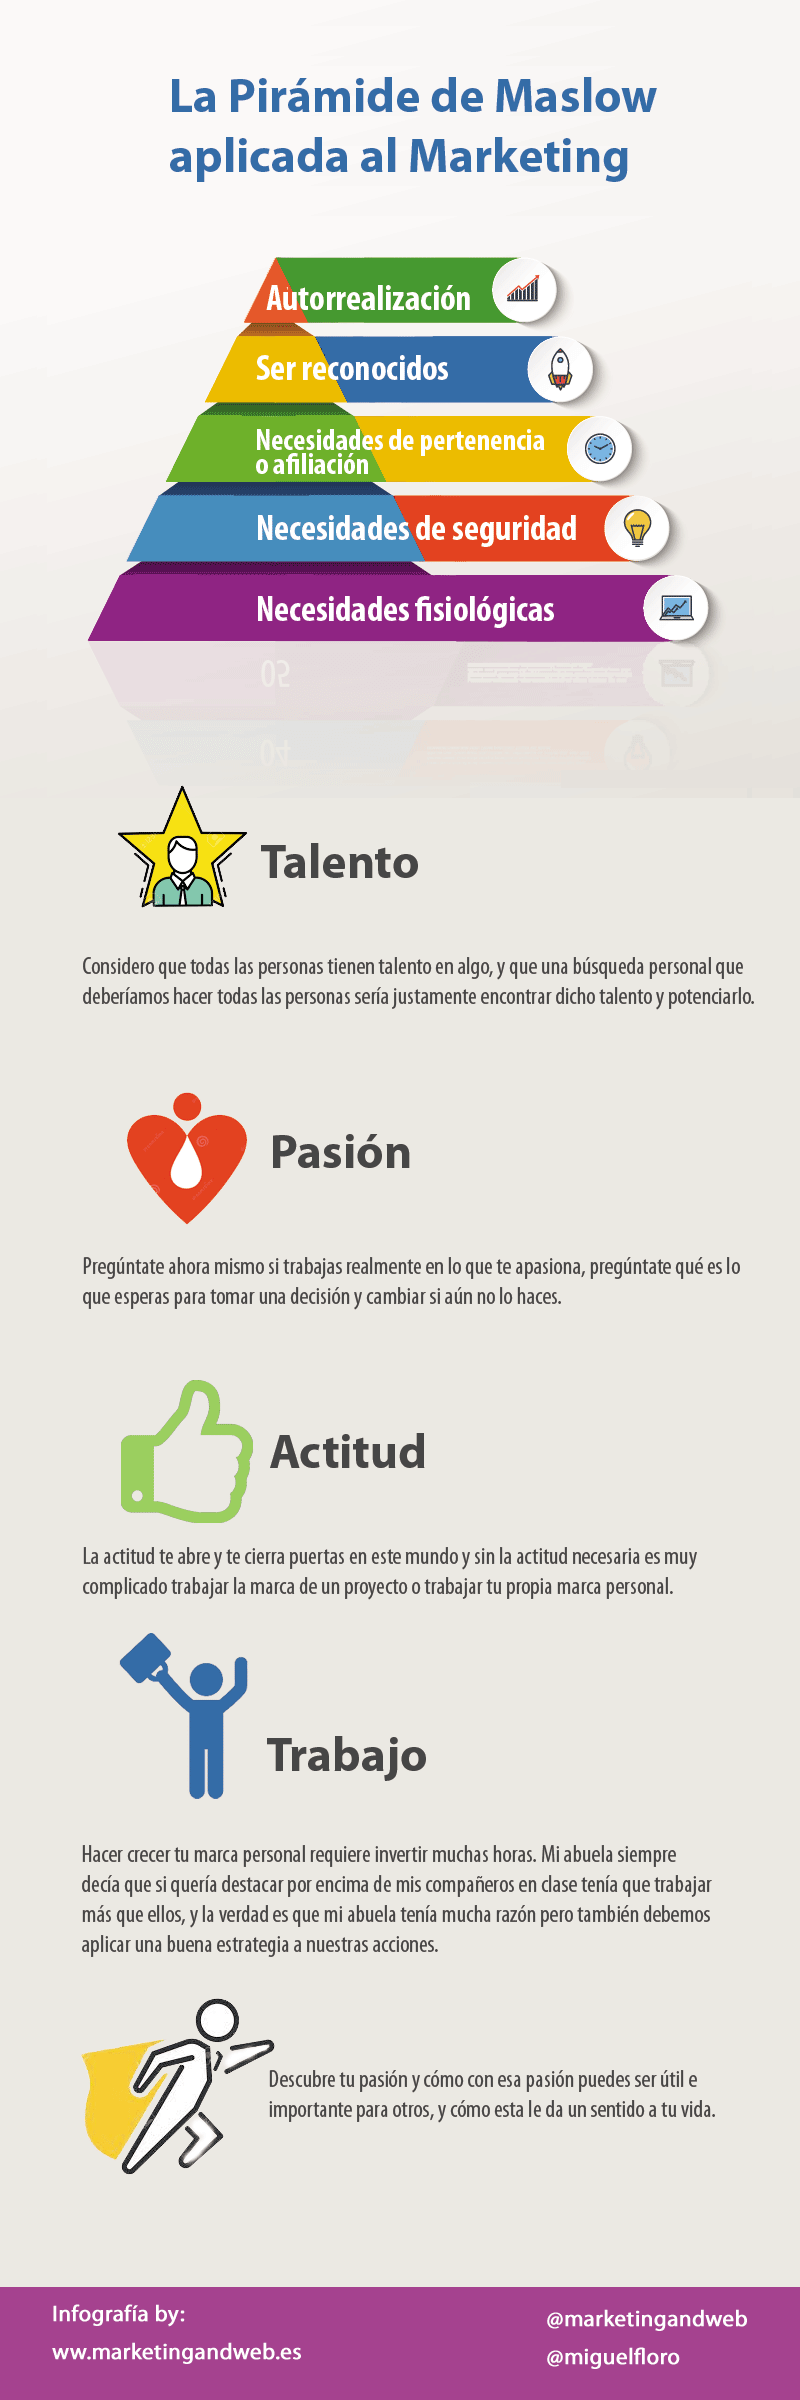 pirámide de maslow en el marketing